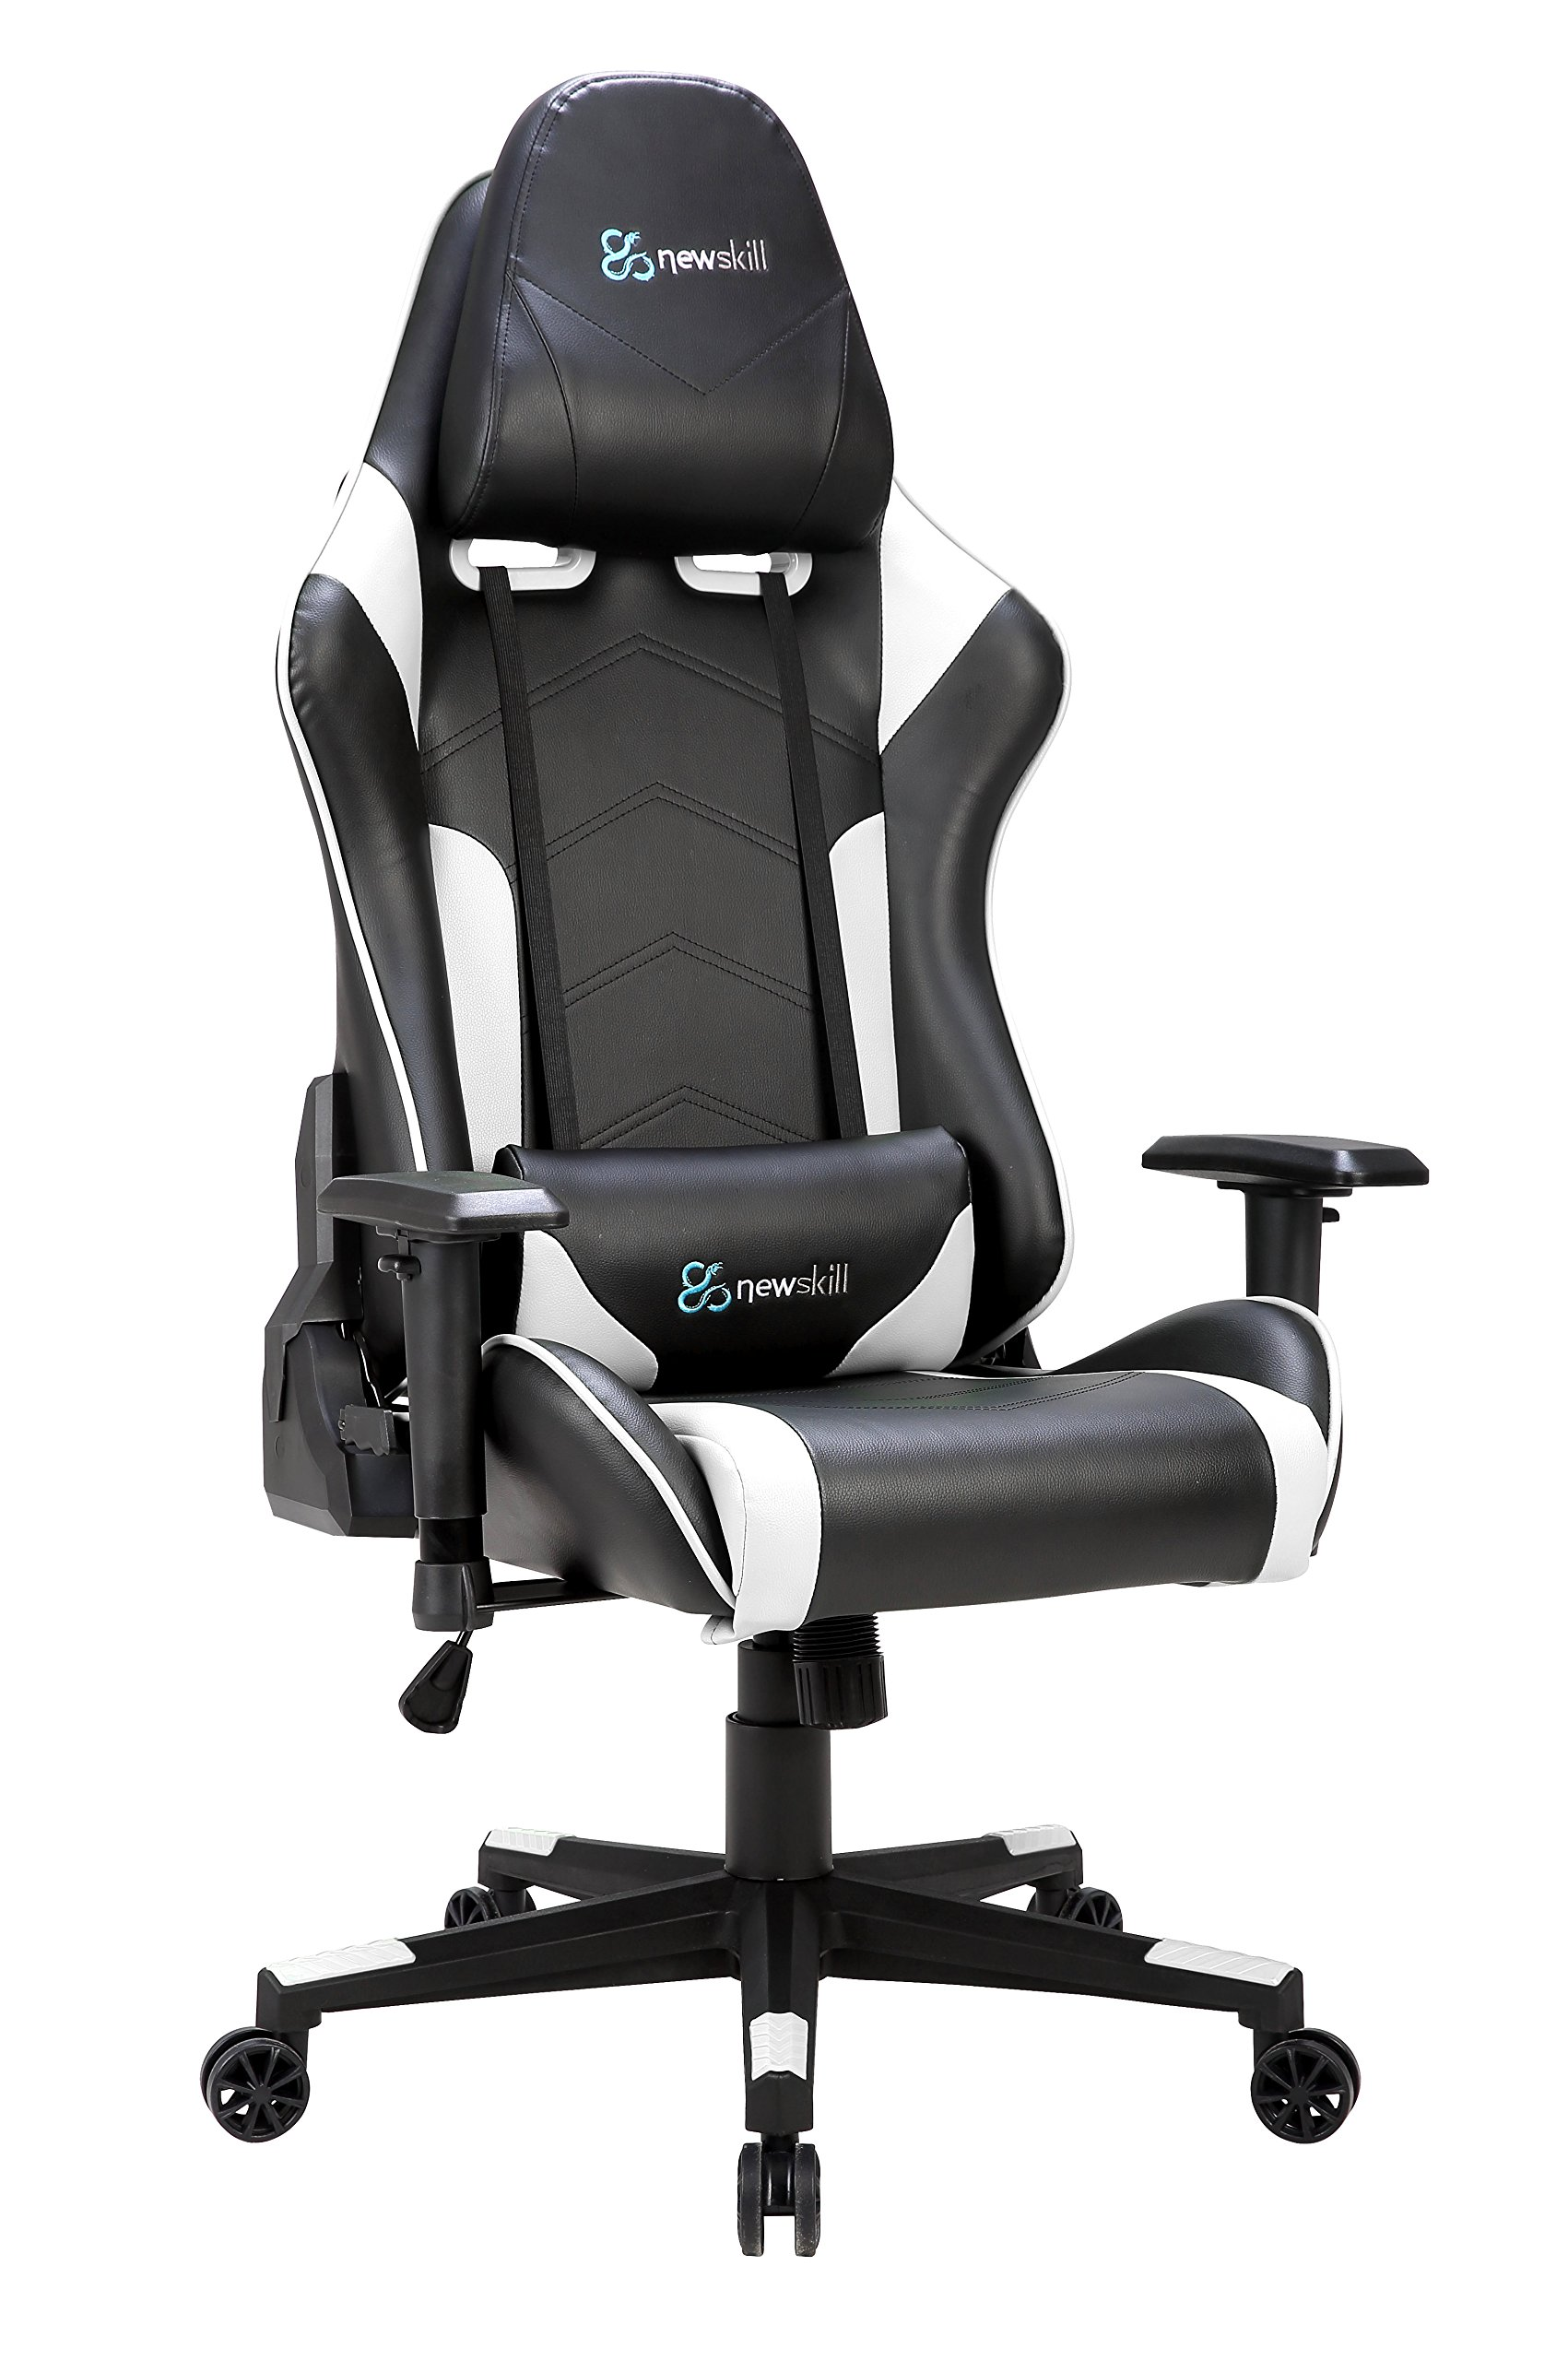 Newskill Kitsune – Silla gaming profesional (Inclinación y altura regulable, reposabrazos 2D ajustables, base en nylon, reclinable 180º), Color Blanca